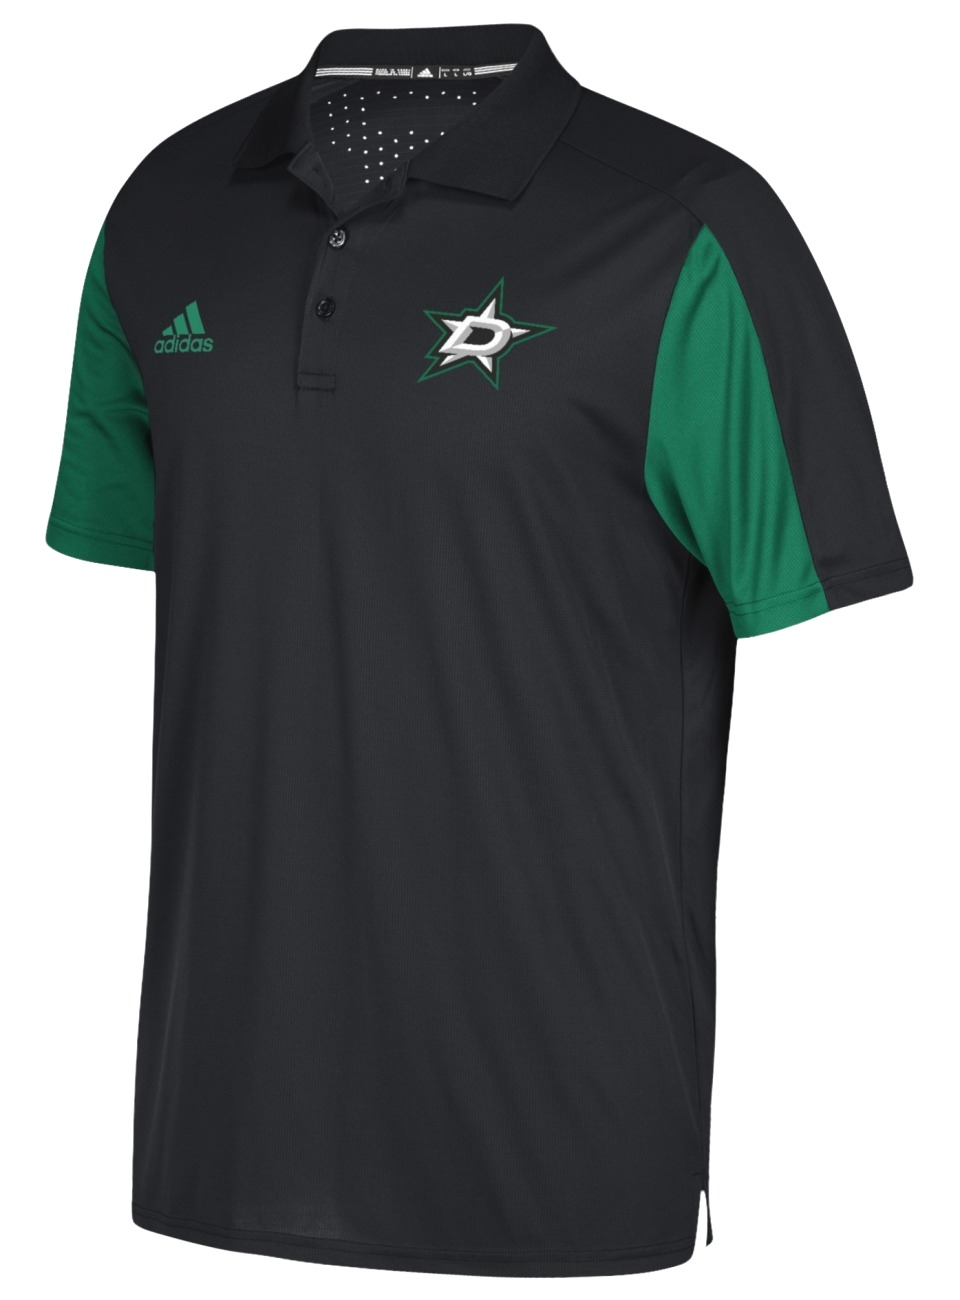 Dallas Stars Adidas NHL Men's 2017 Authentic Game Day Polo Shirt